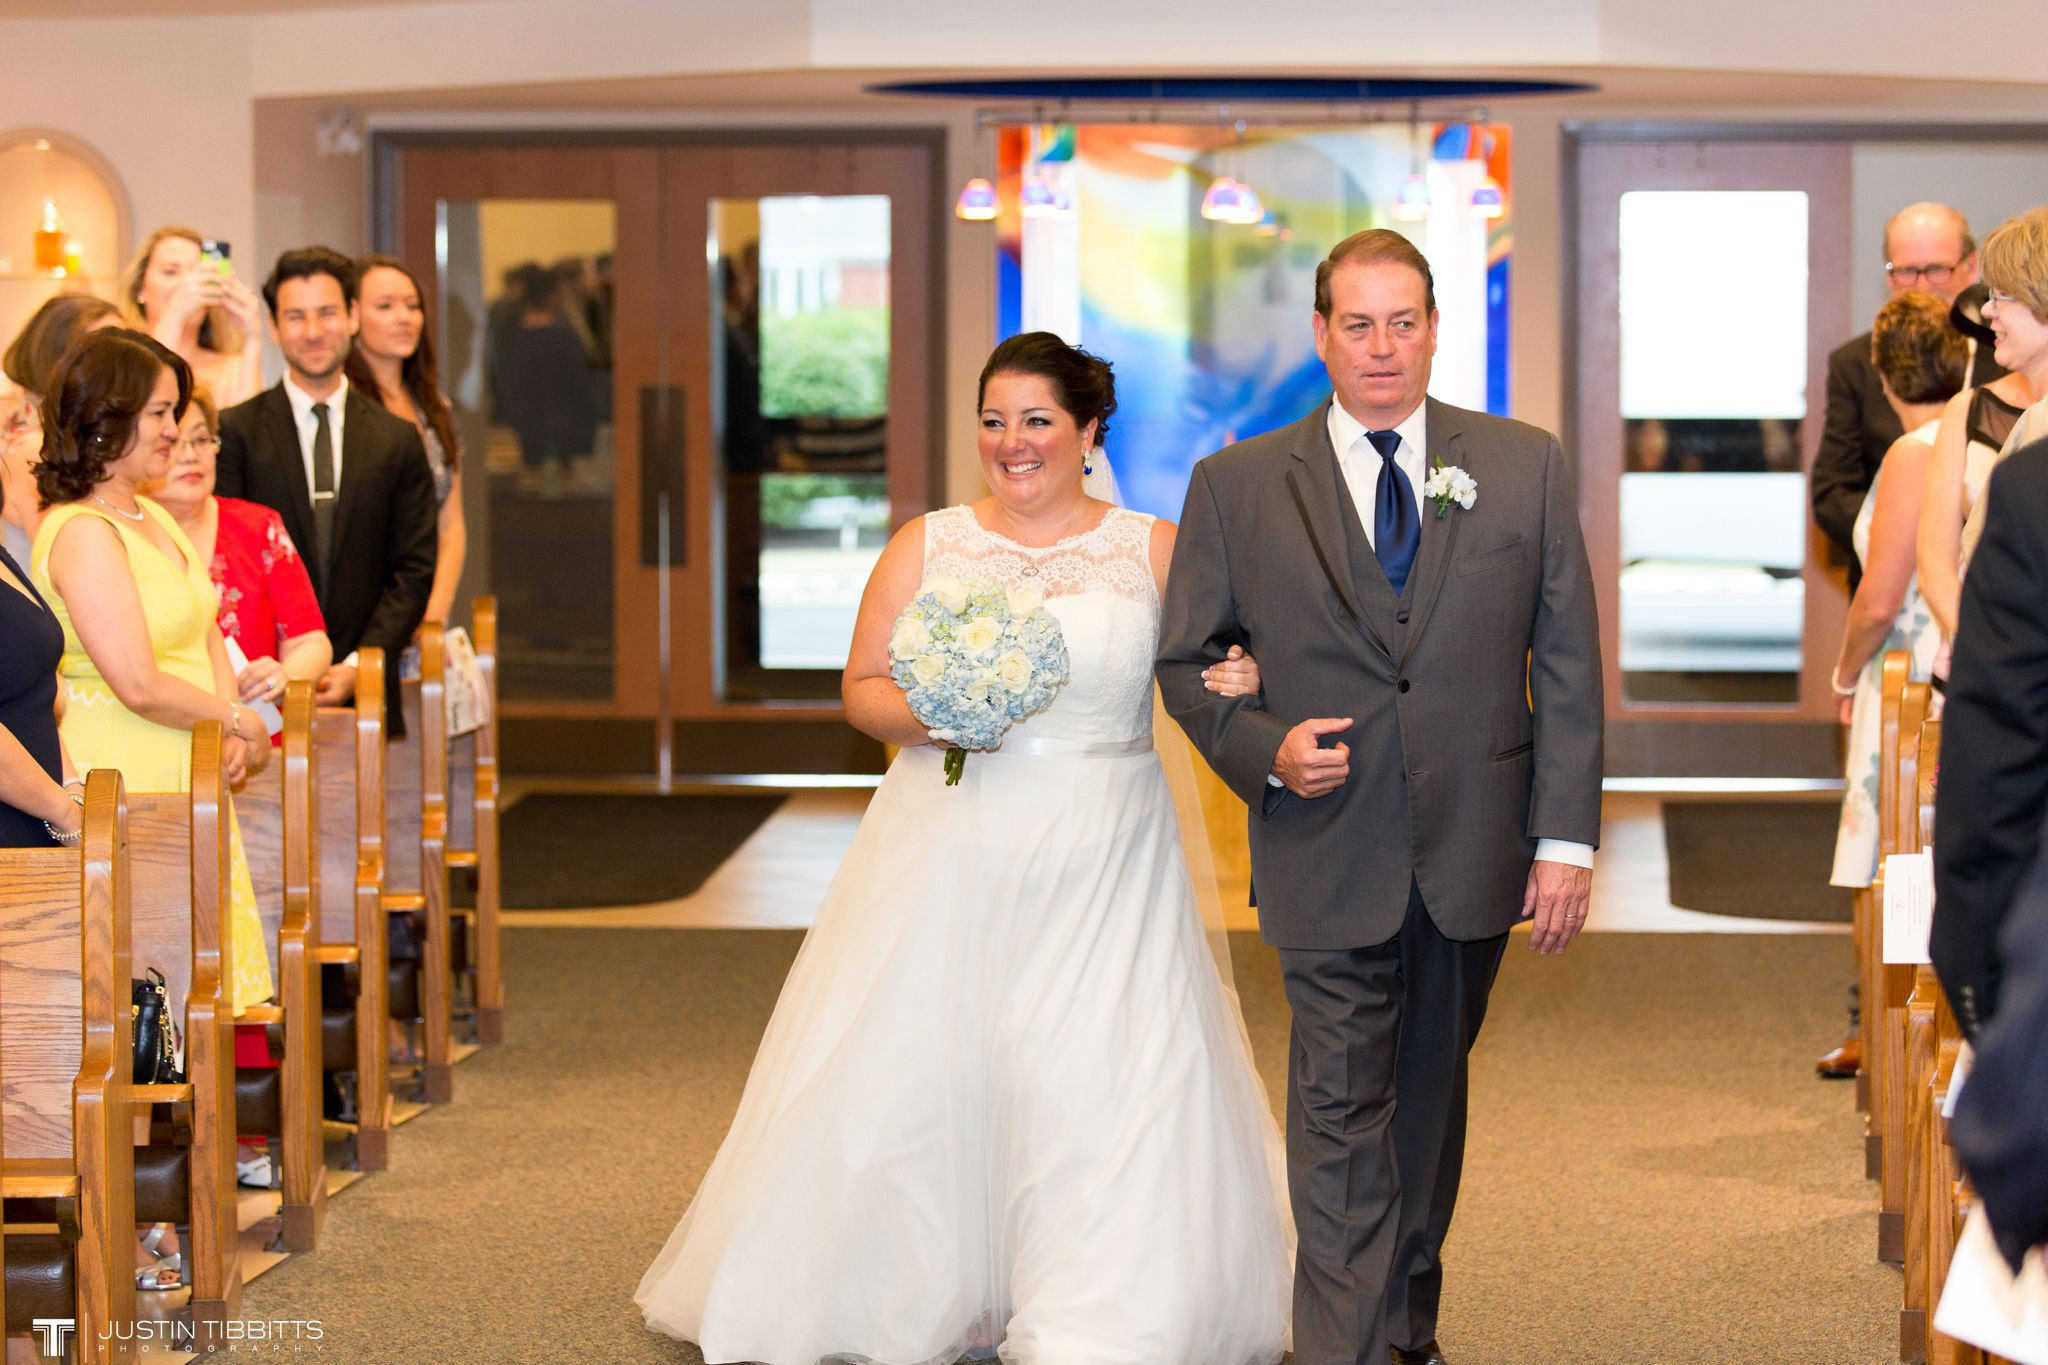 century-house-wedding-photos-with-james-and-molly_0065